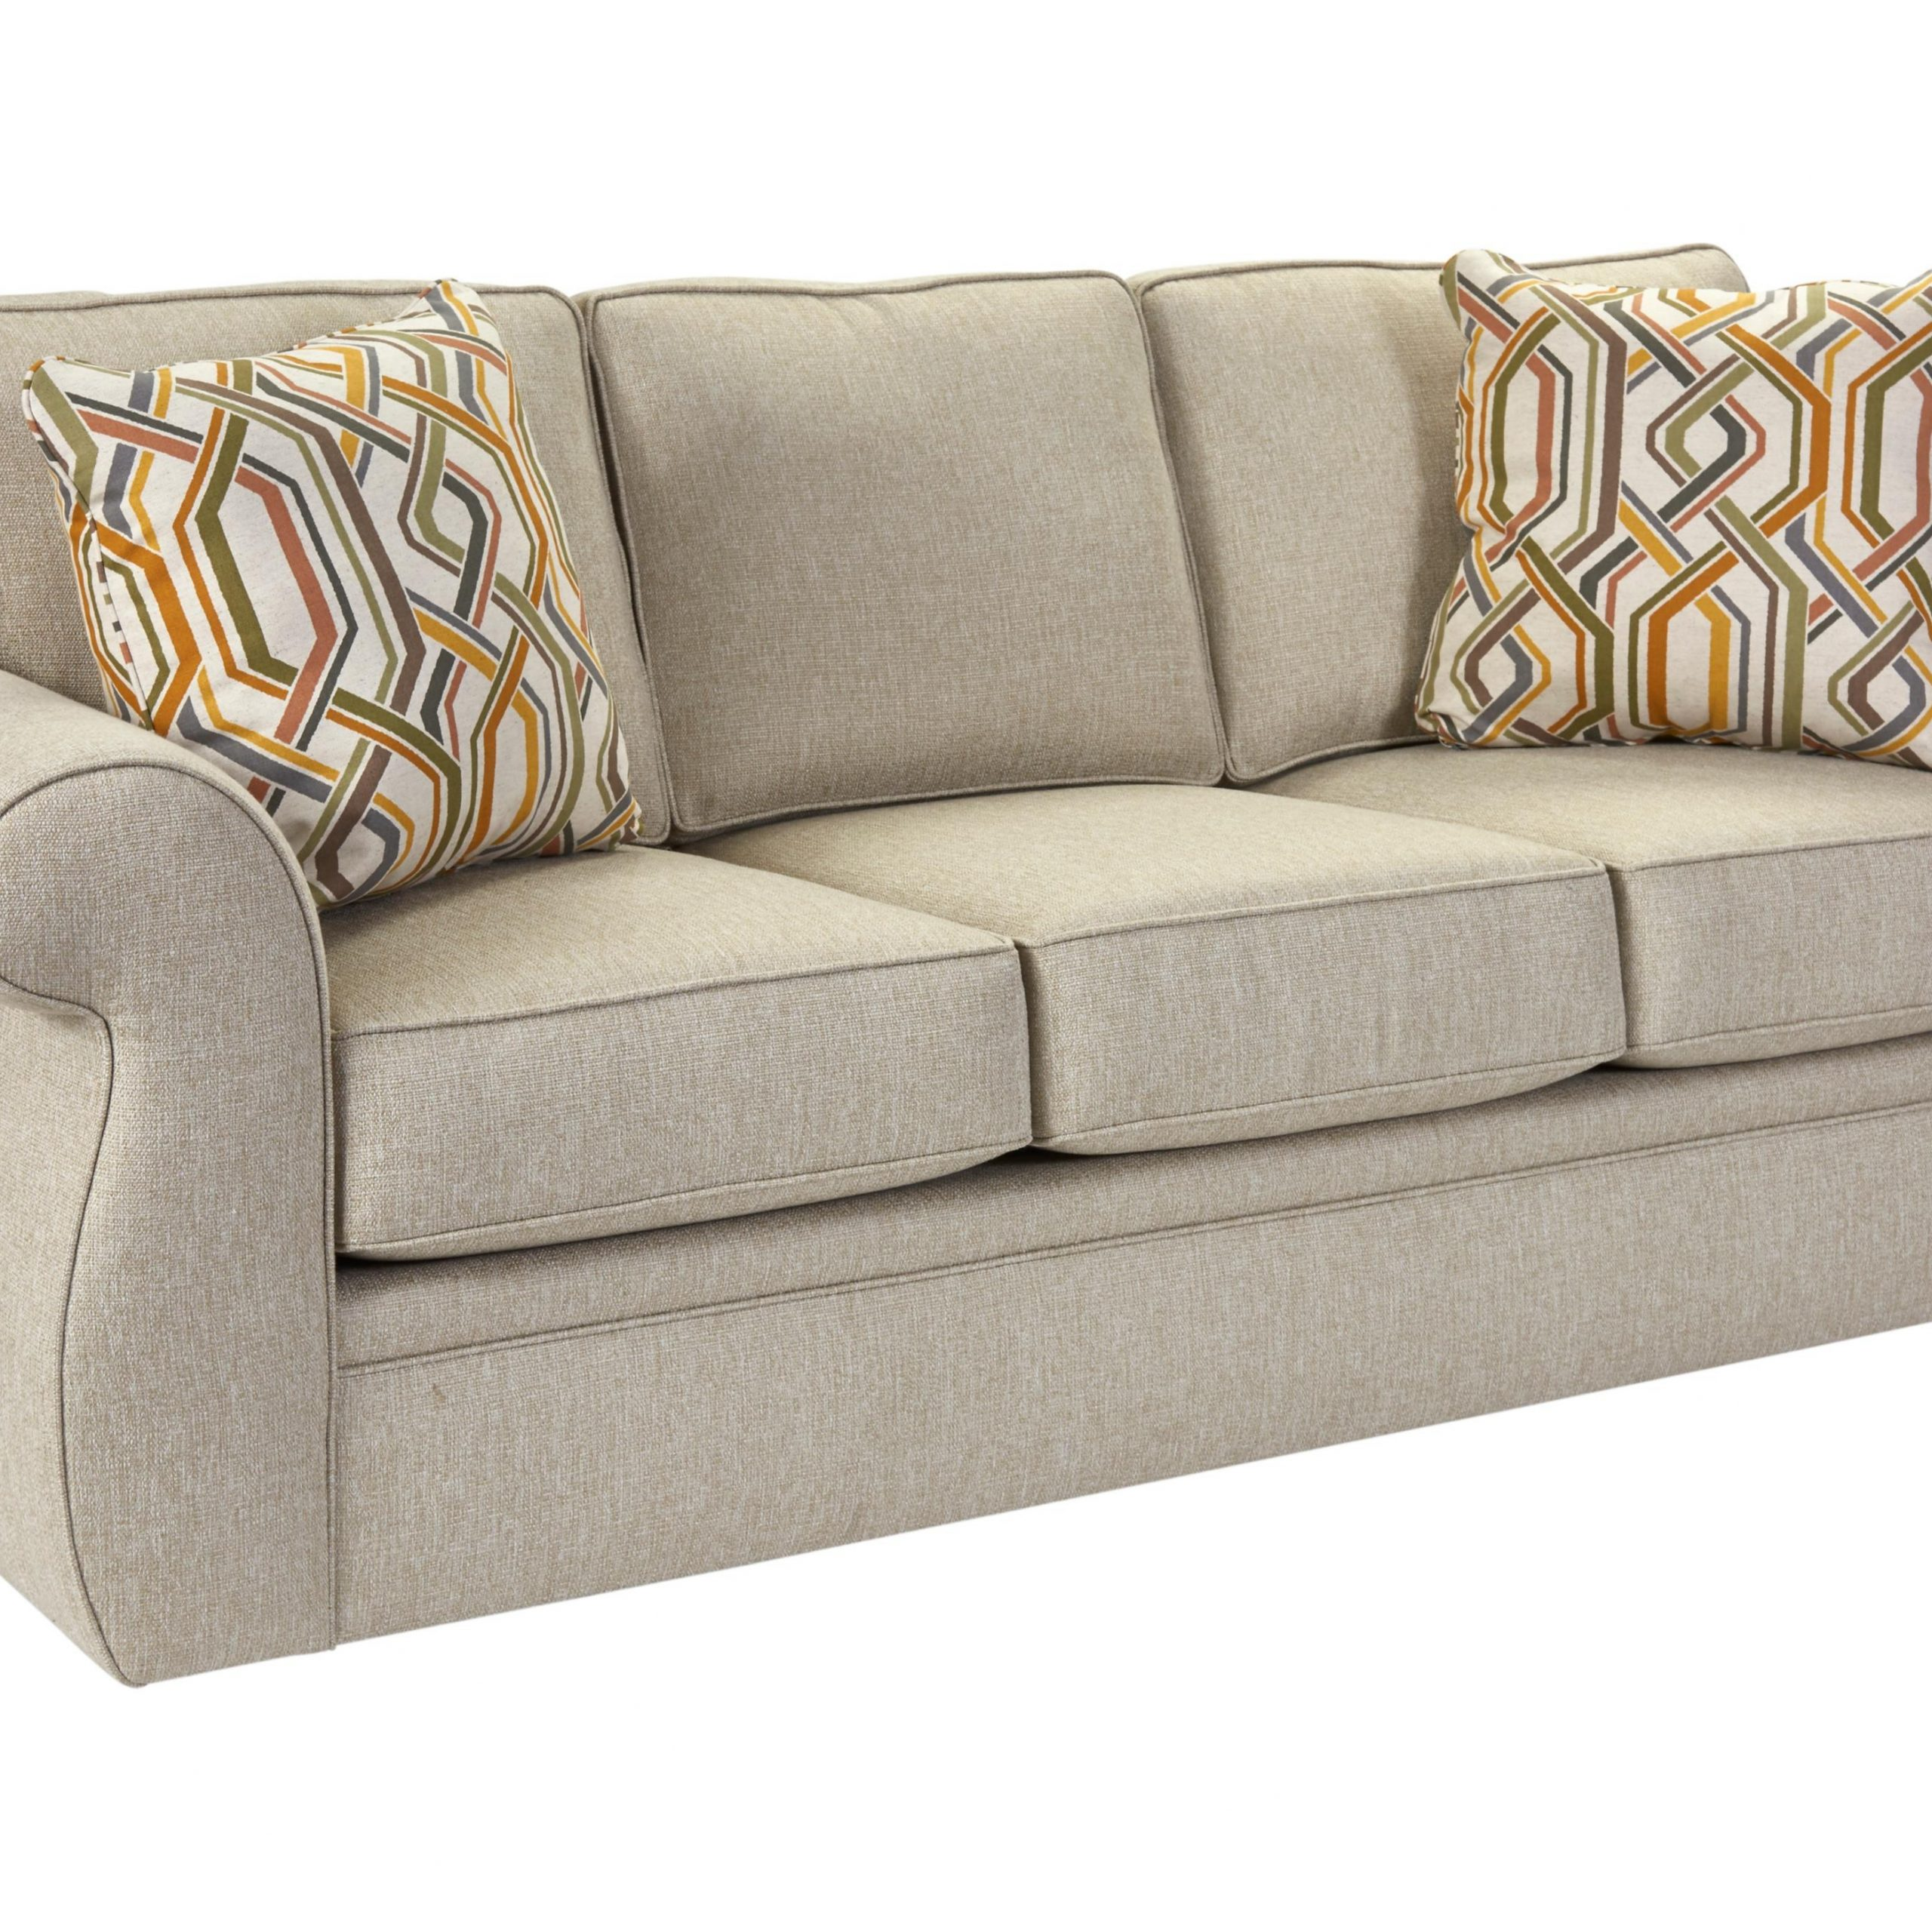 Broyhill Furniture Veronica Traditional Sofa With Oversize Within Broyhill Sectional Sofas (Photo 2 of 15)